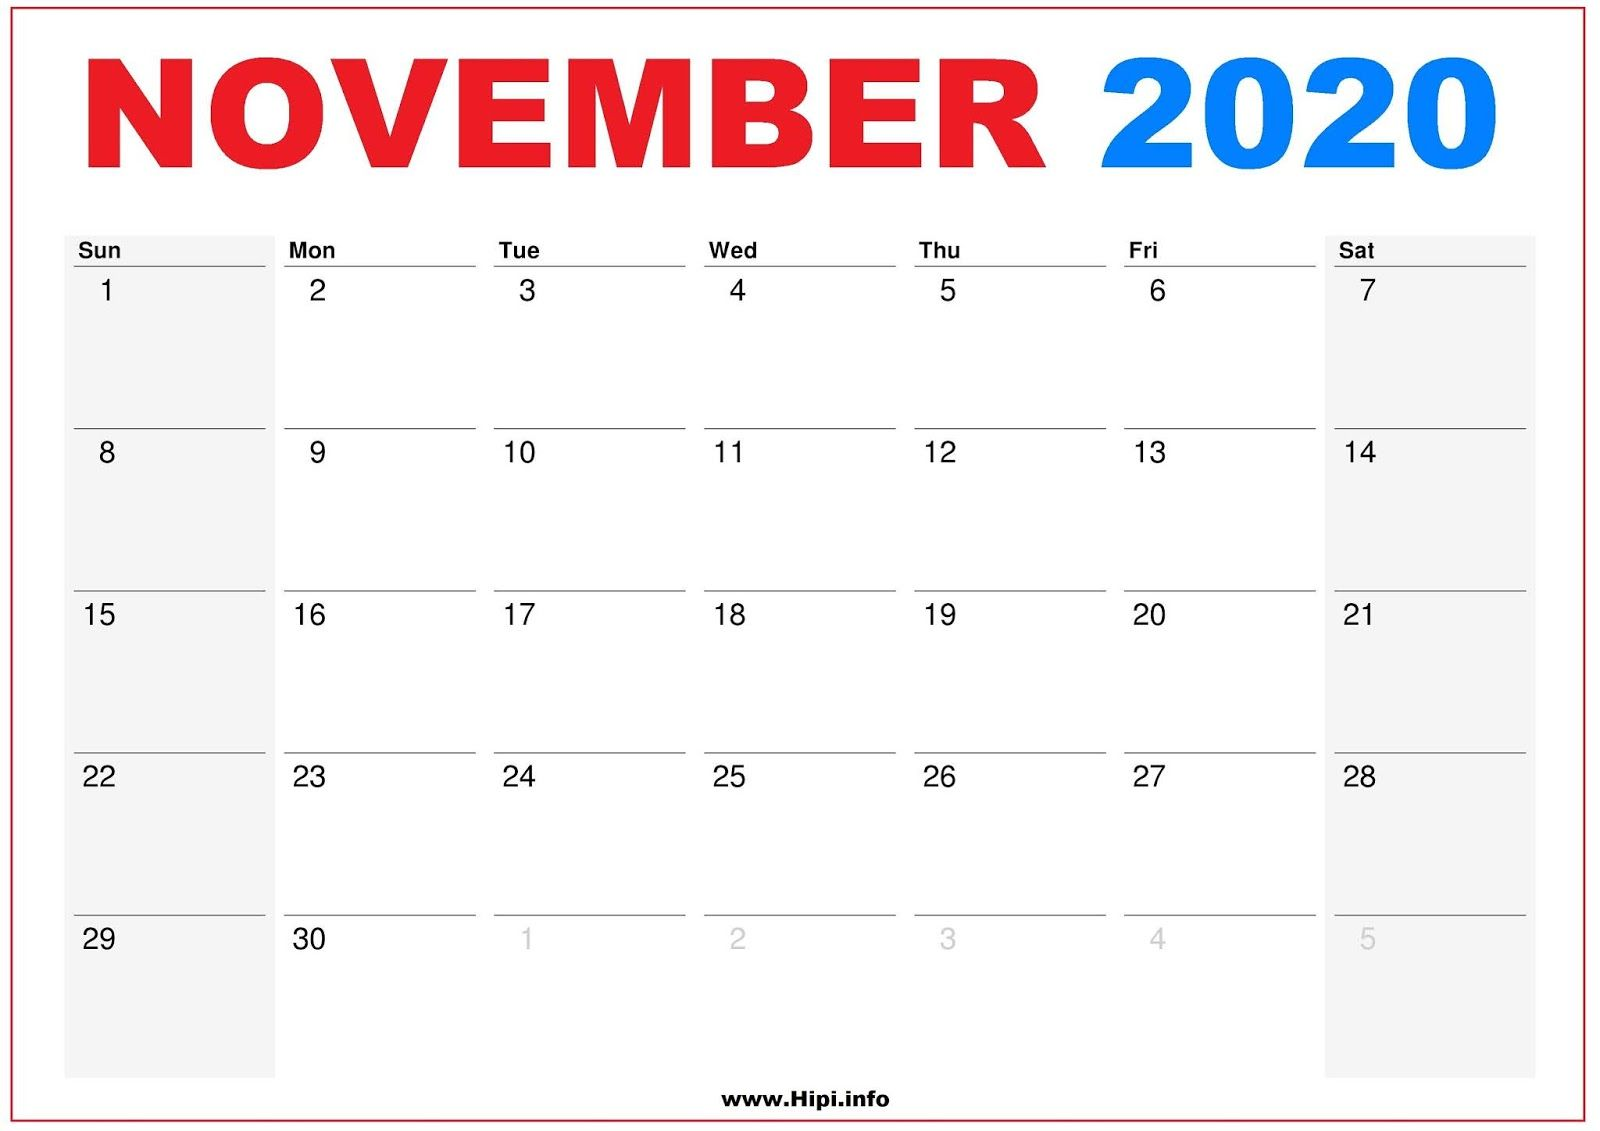 November 2020 Calendar Wallpapers   Top November 2020 1600x1131